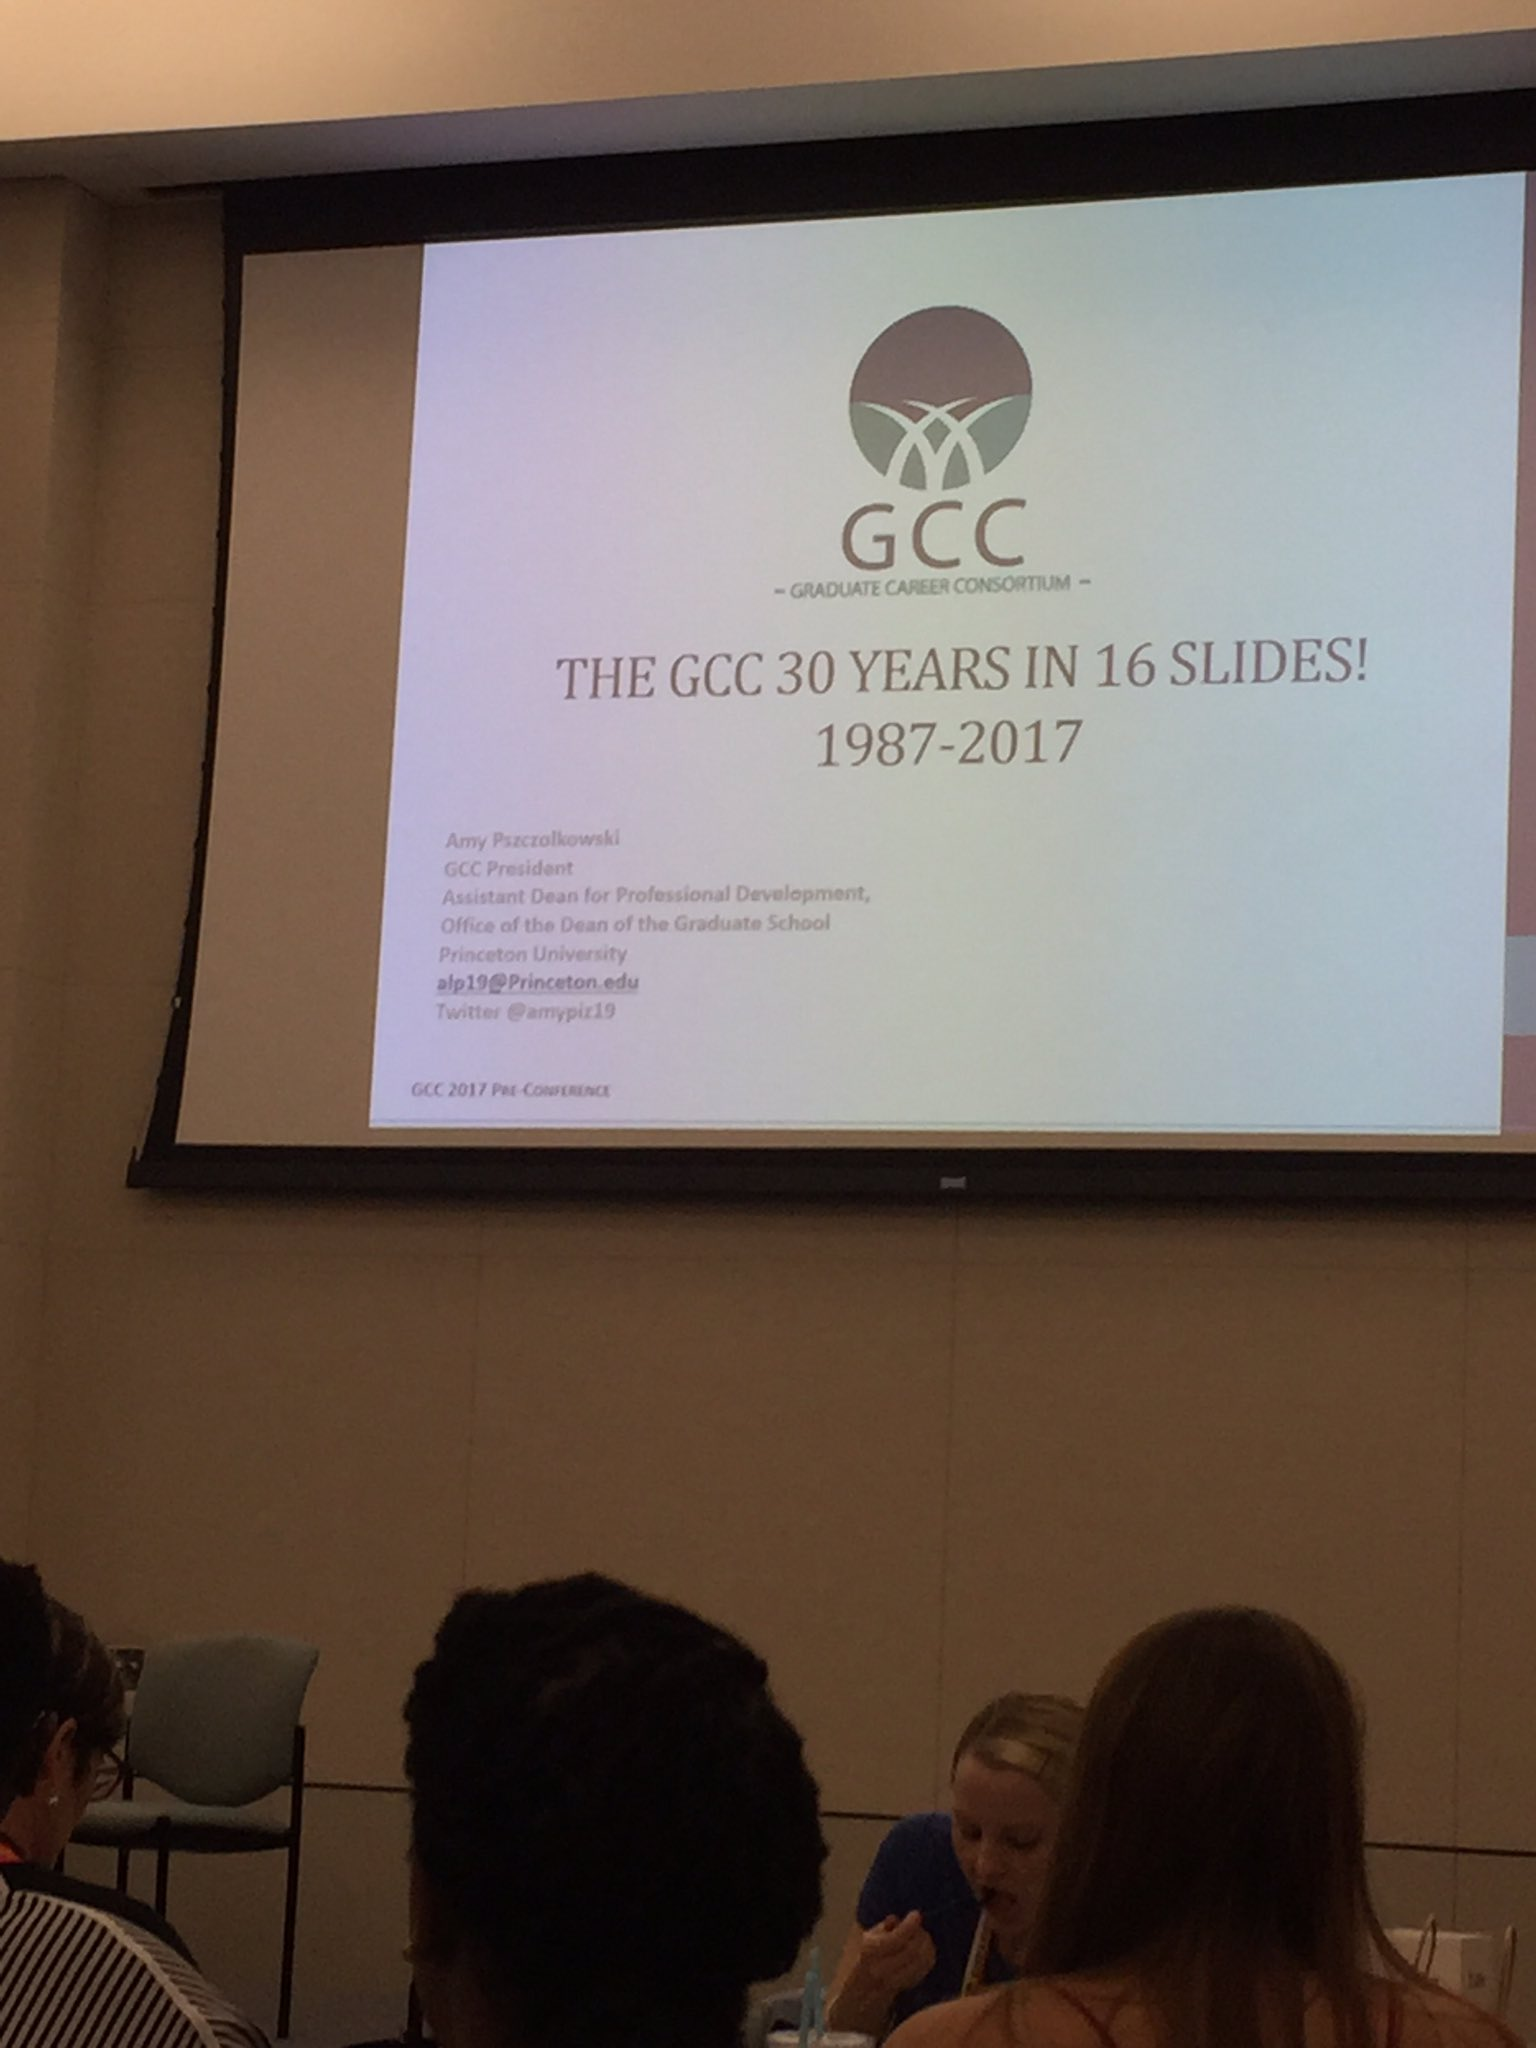 Excited to be here at the #2017GCC pre-conference to learn and share @NRMNET resources! https://t.co/32HNZ2cUbT